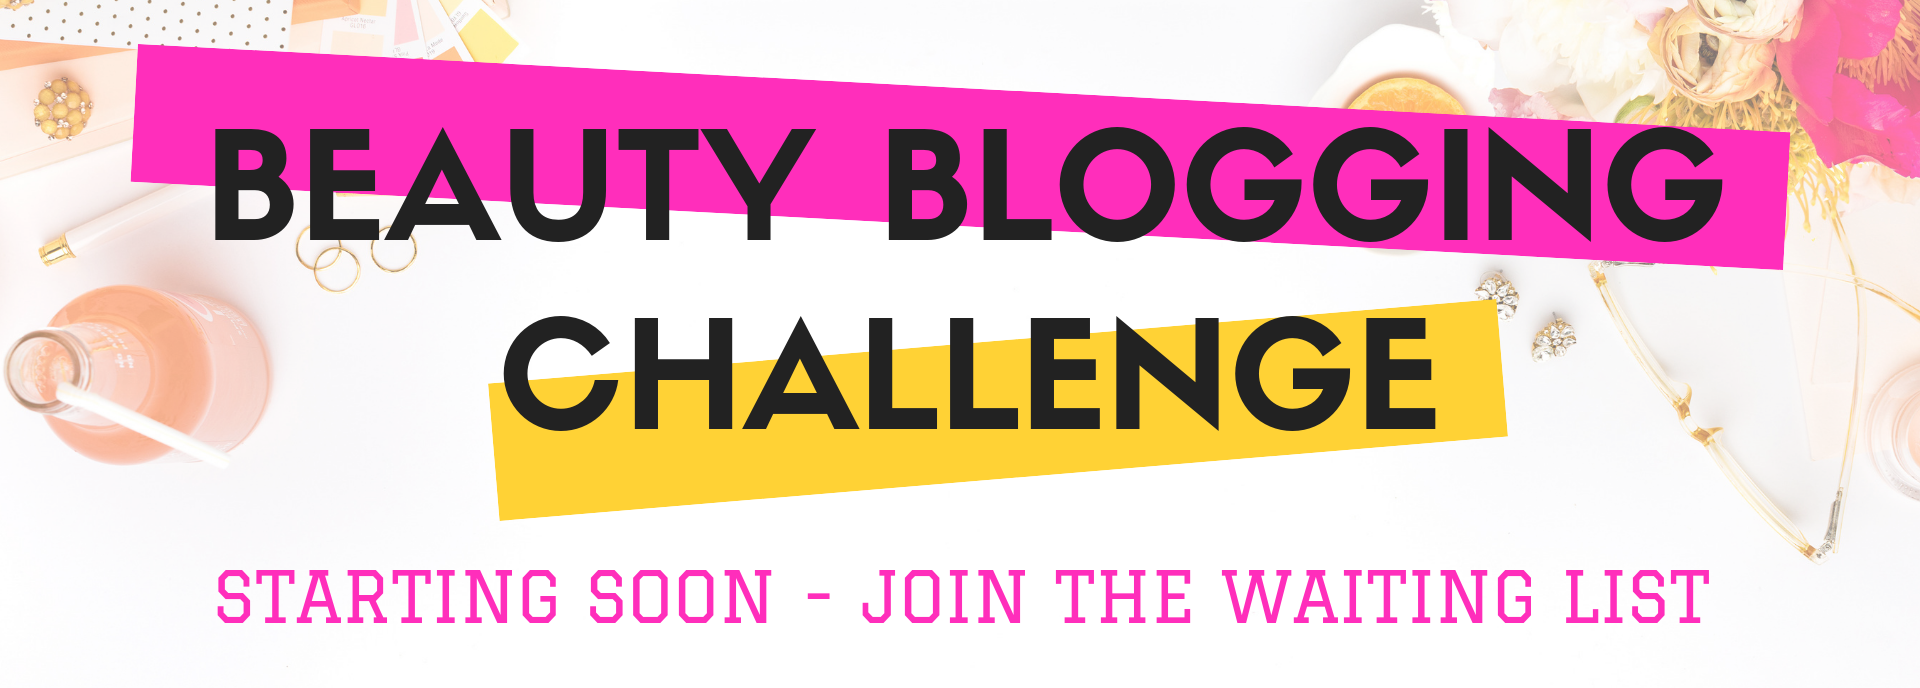 Beauty Blogging Challenge - Join The Wait List